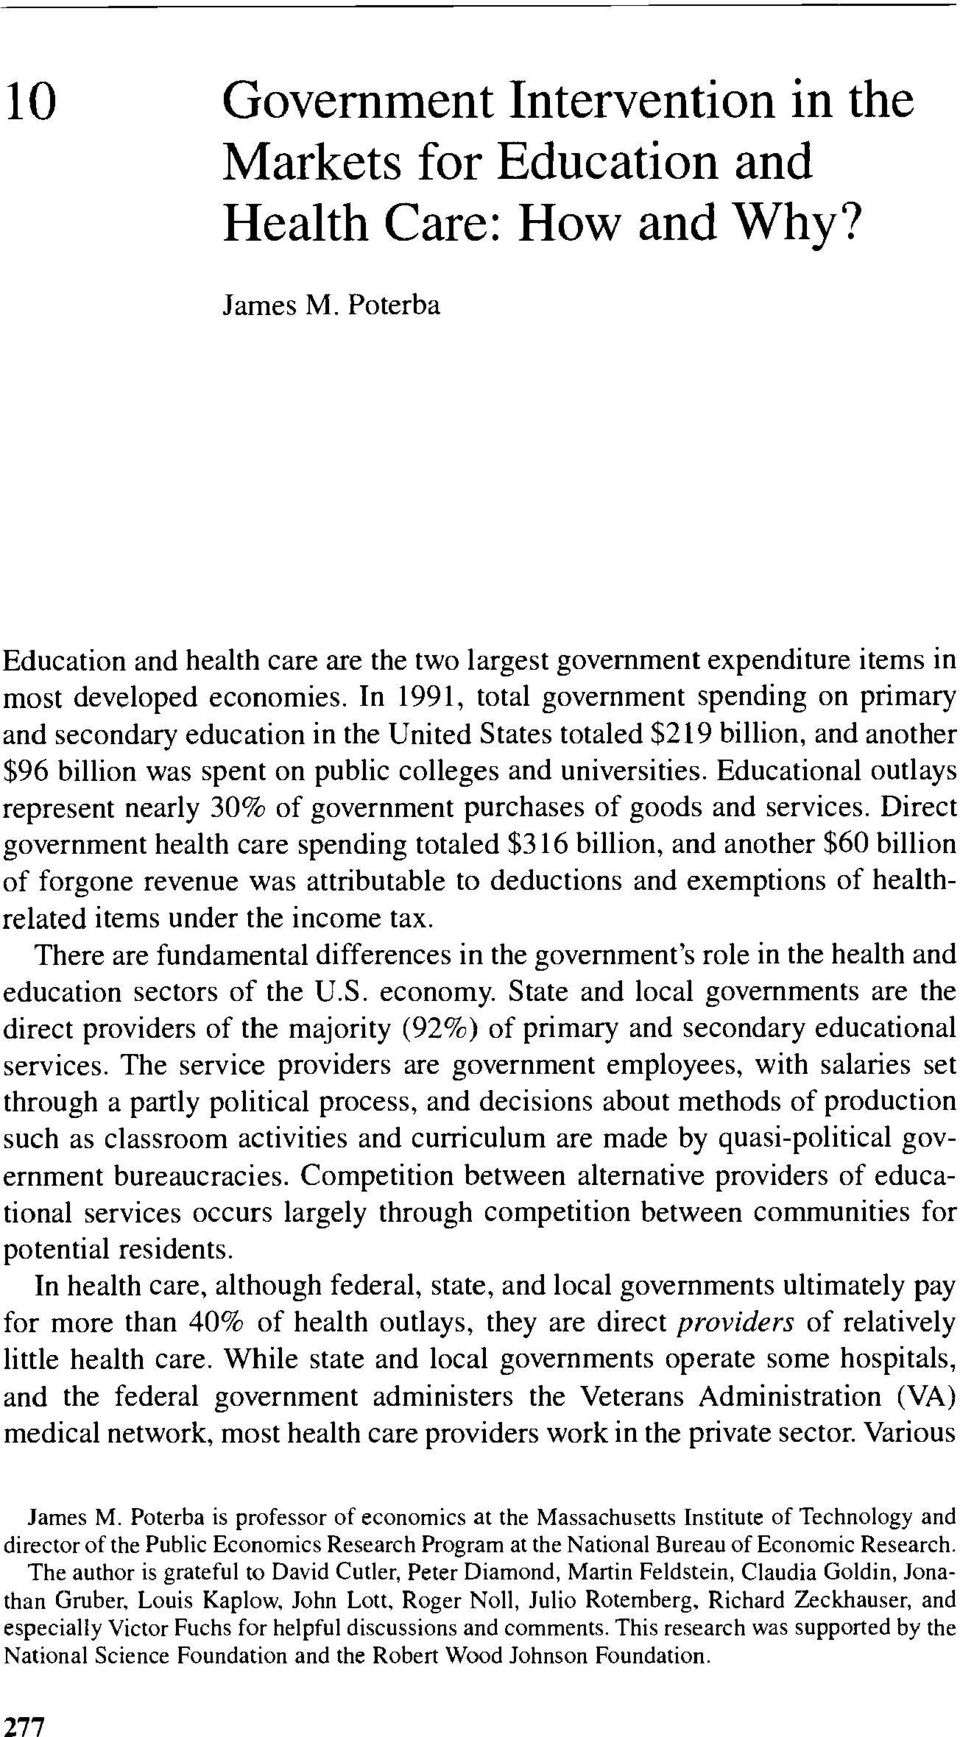 In 1991, total government spending on primary and secondary education in the United States totaled $219 billion, and another $96 billion was spent on public colleges and universities.